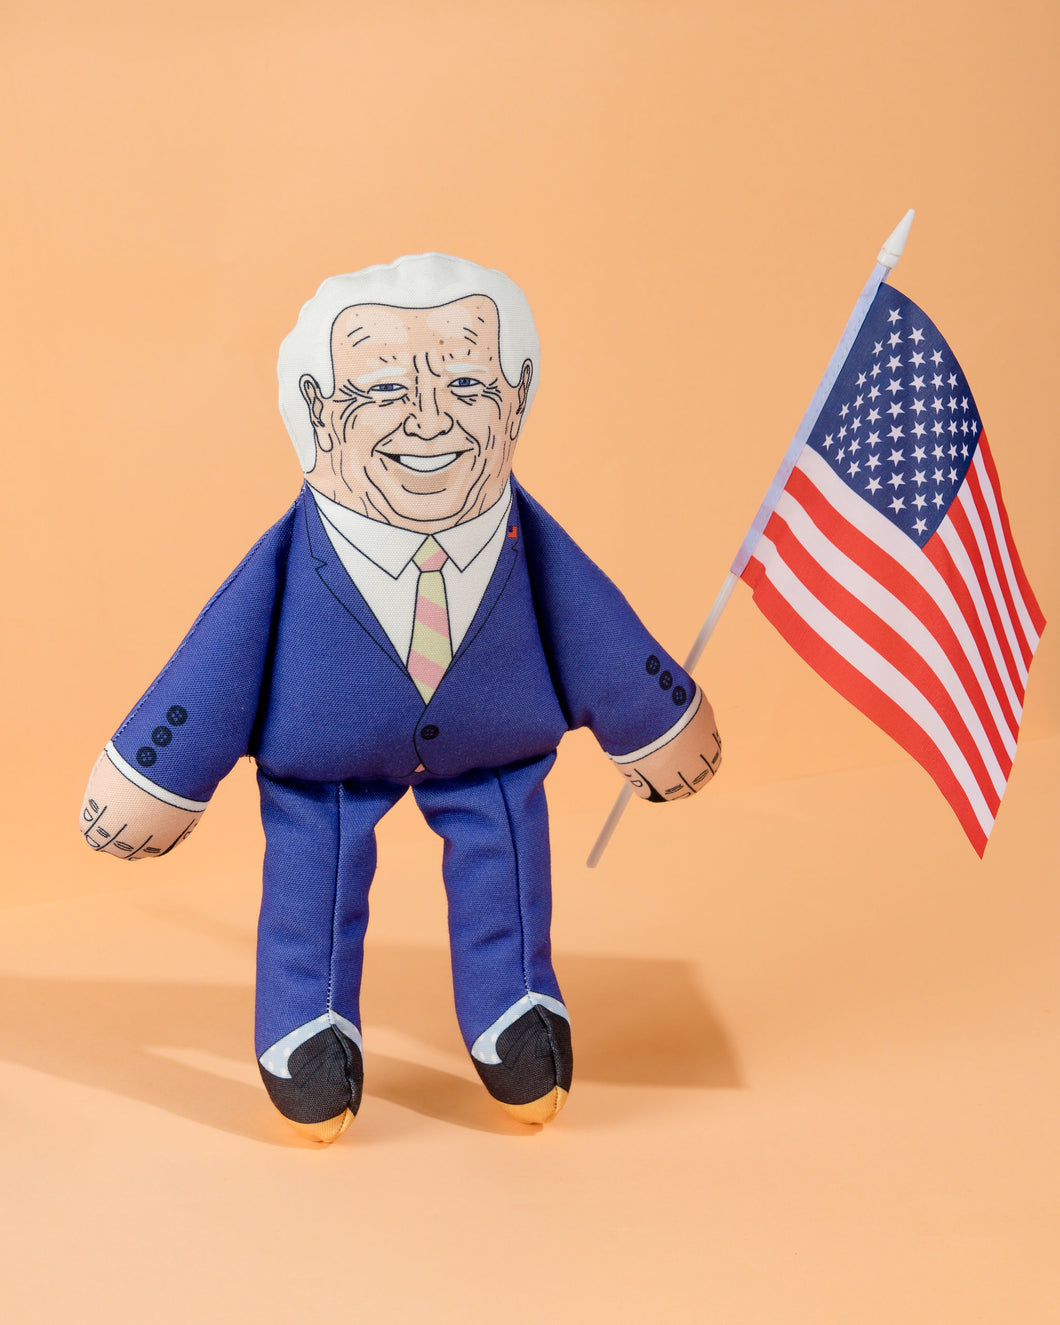 Joe Biden dog toy with American flag